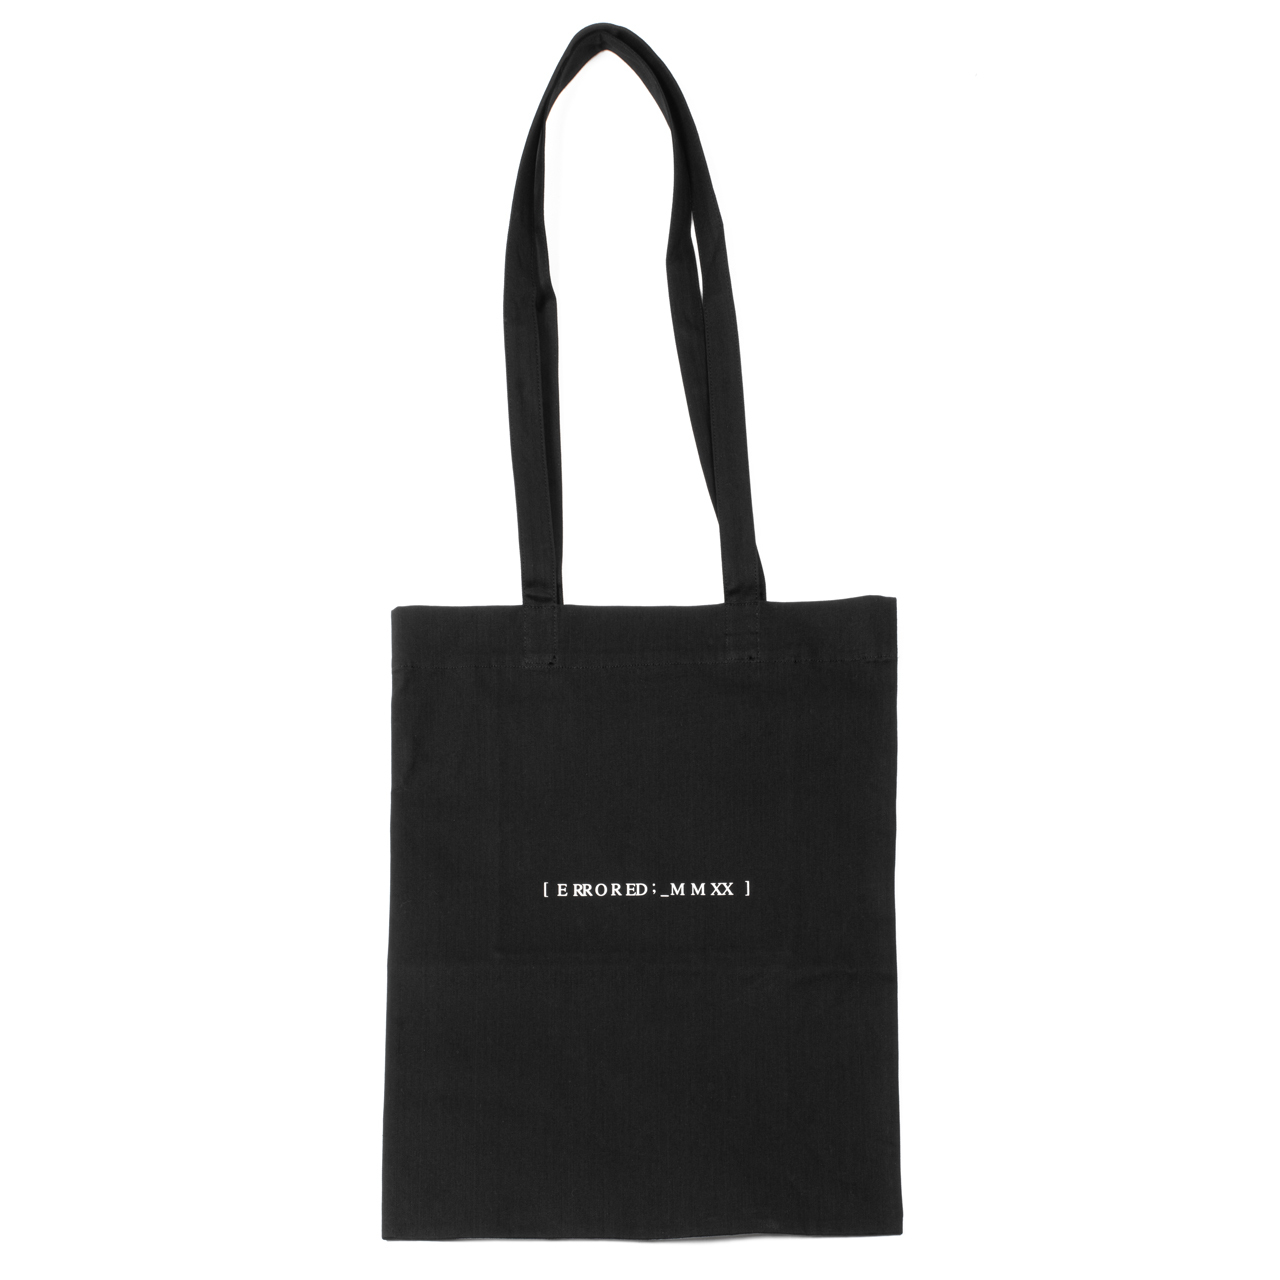 708BGU1-BLACK / ORIGINAL ECO BAG